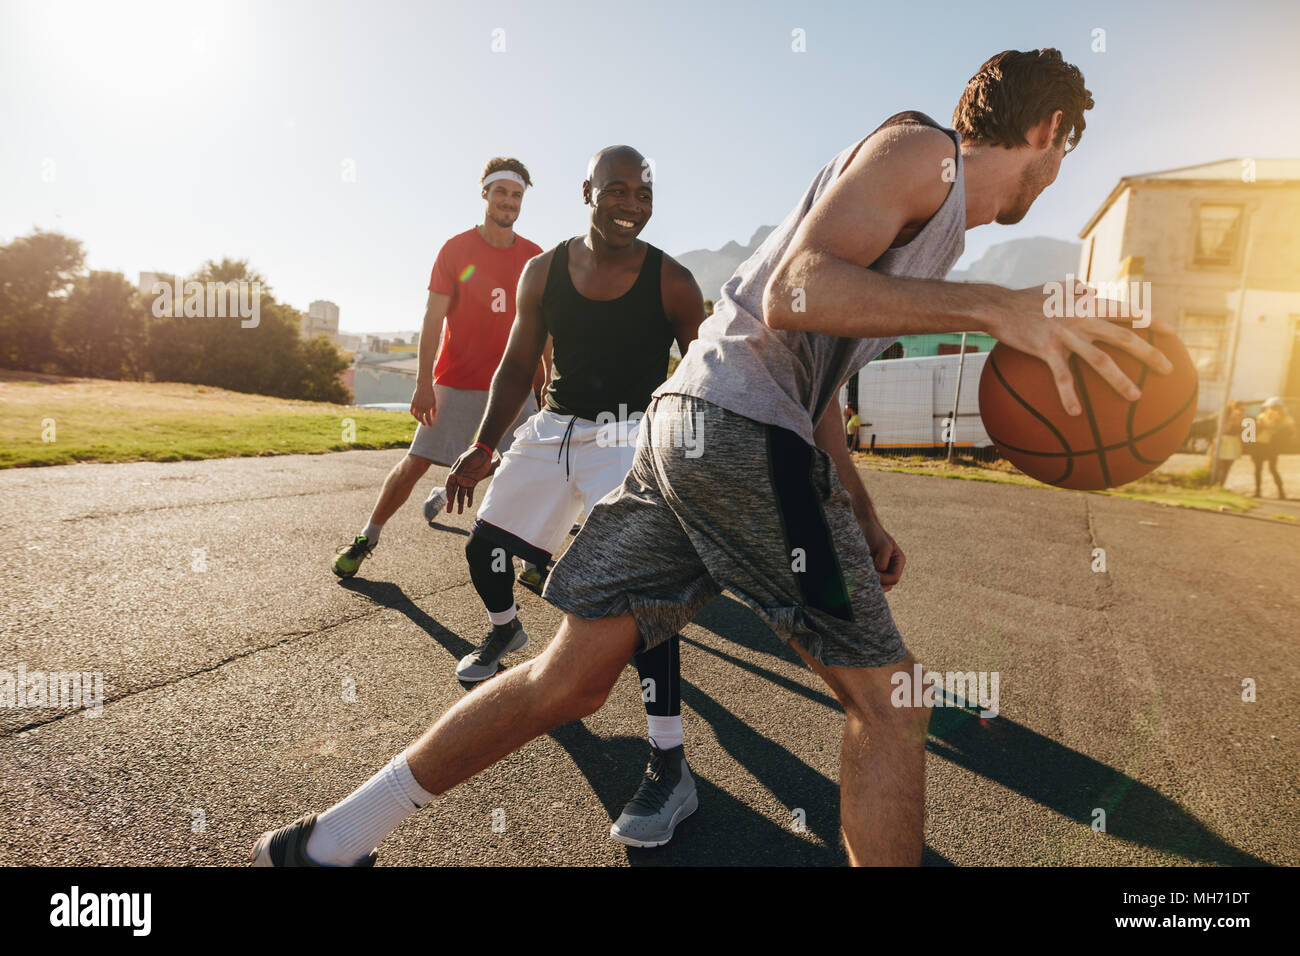 Men playing basketball game on a sunny day. Men practicing basketball skills in play area. Stock Photo